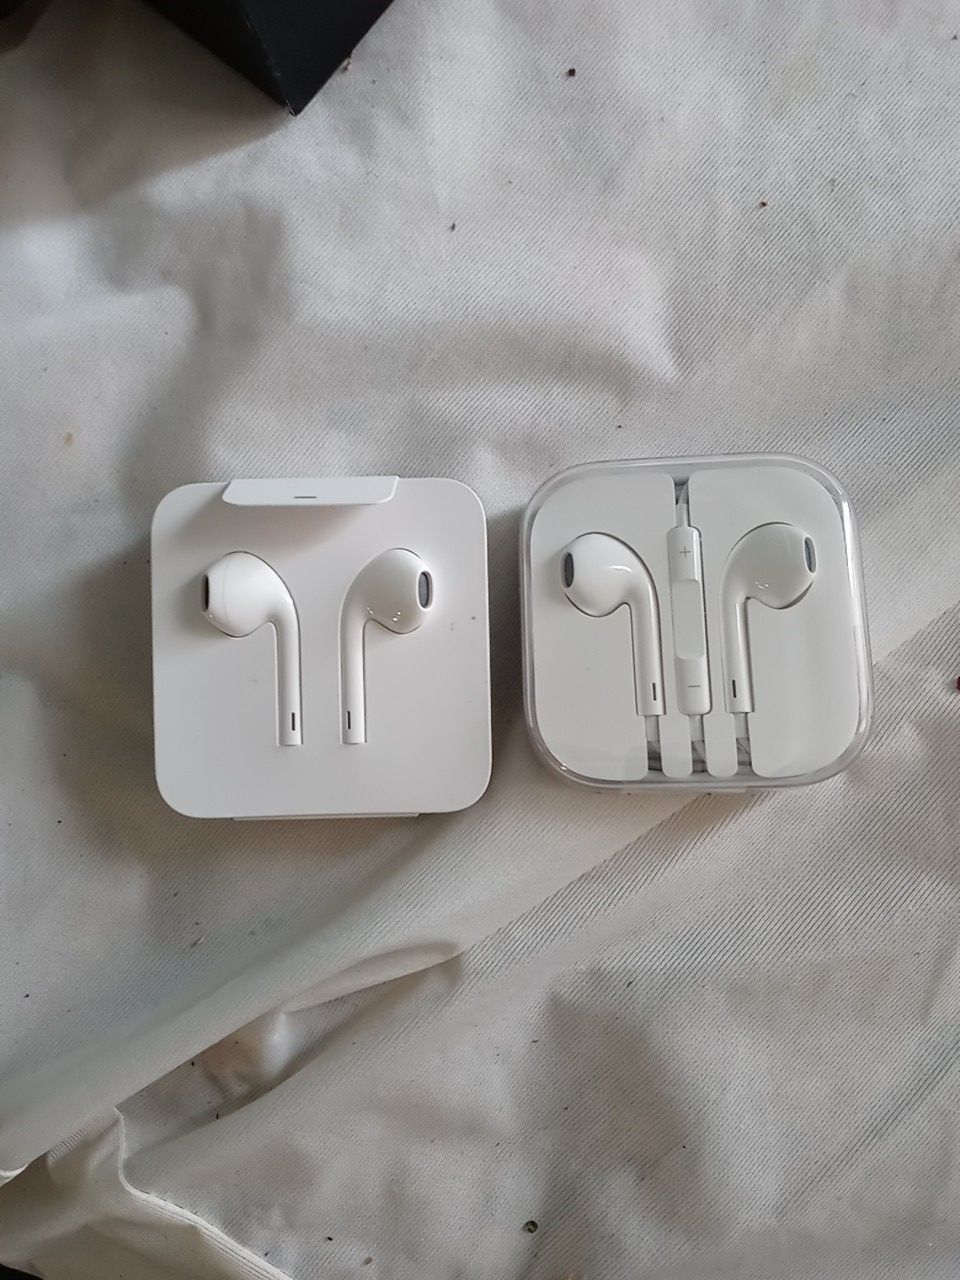 2 sets of Apple ear buds iphone and iphone 5 s